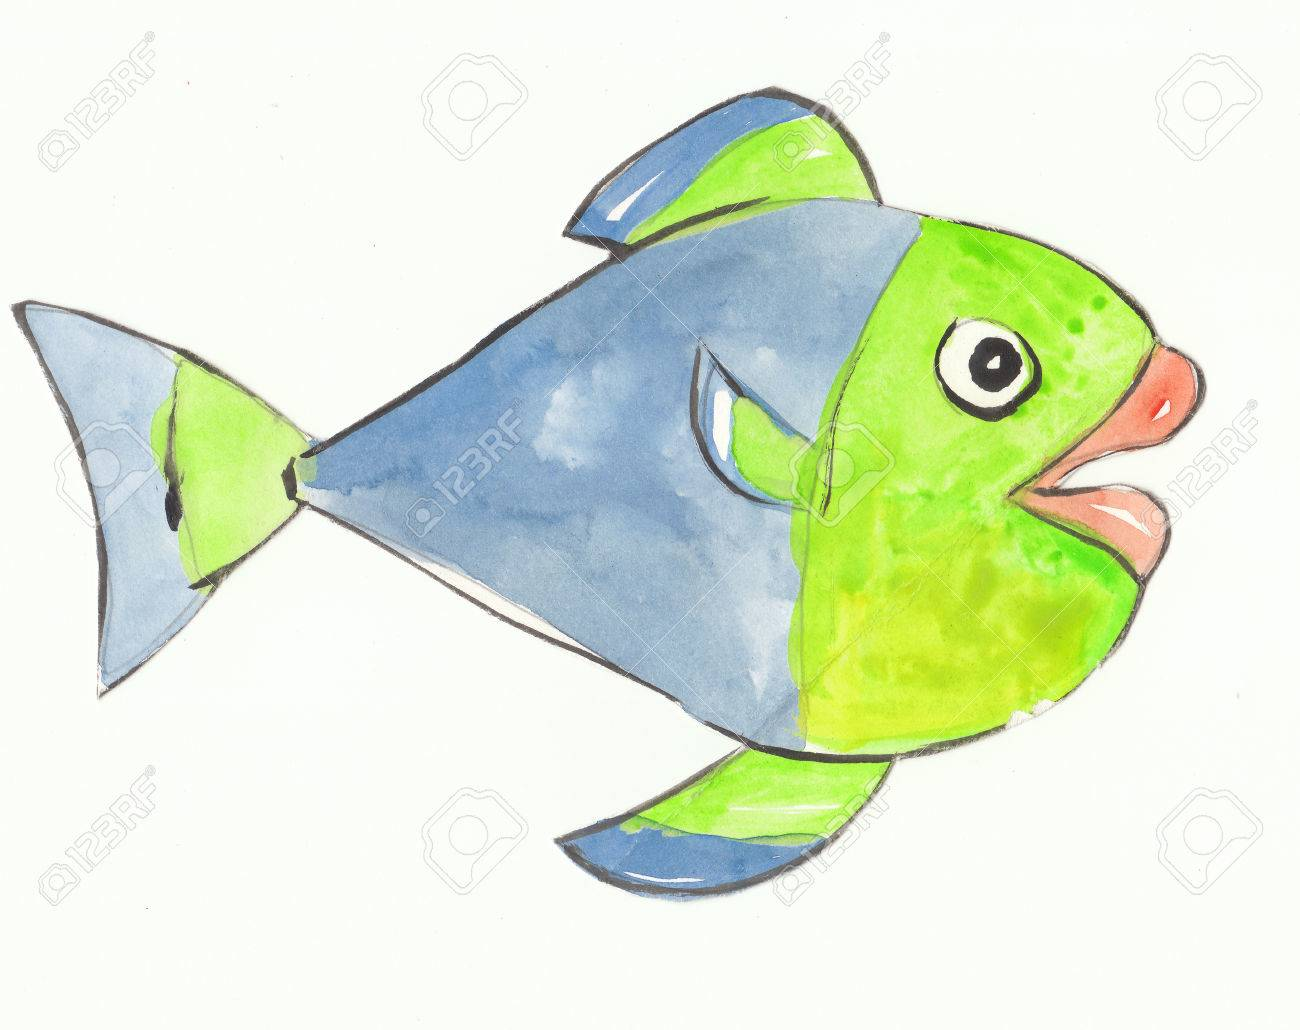 Colorful Fish With Blue And Green Color Is Happy Stock Photo ...